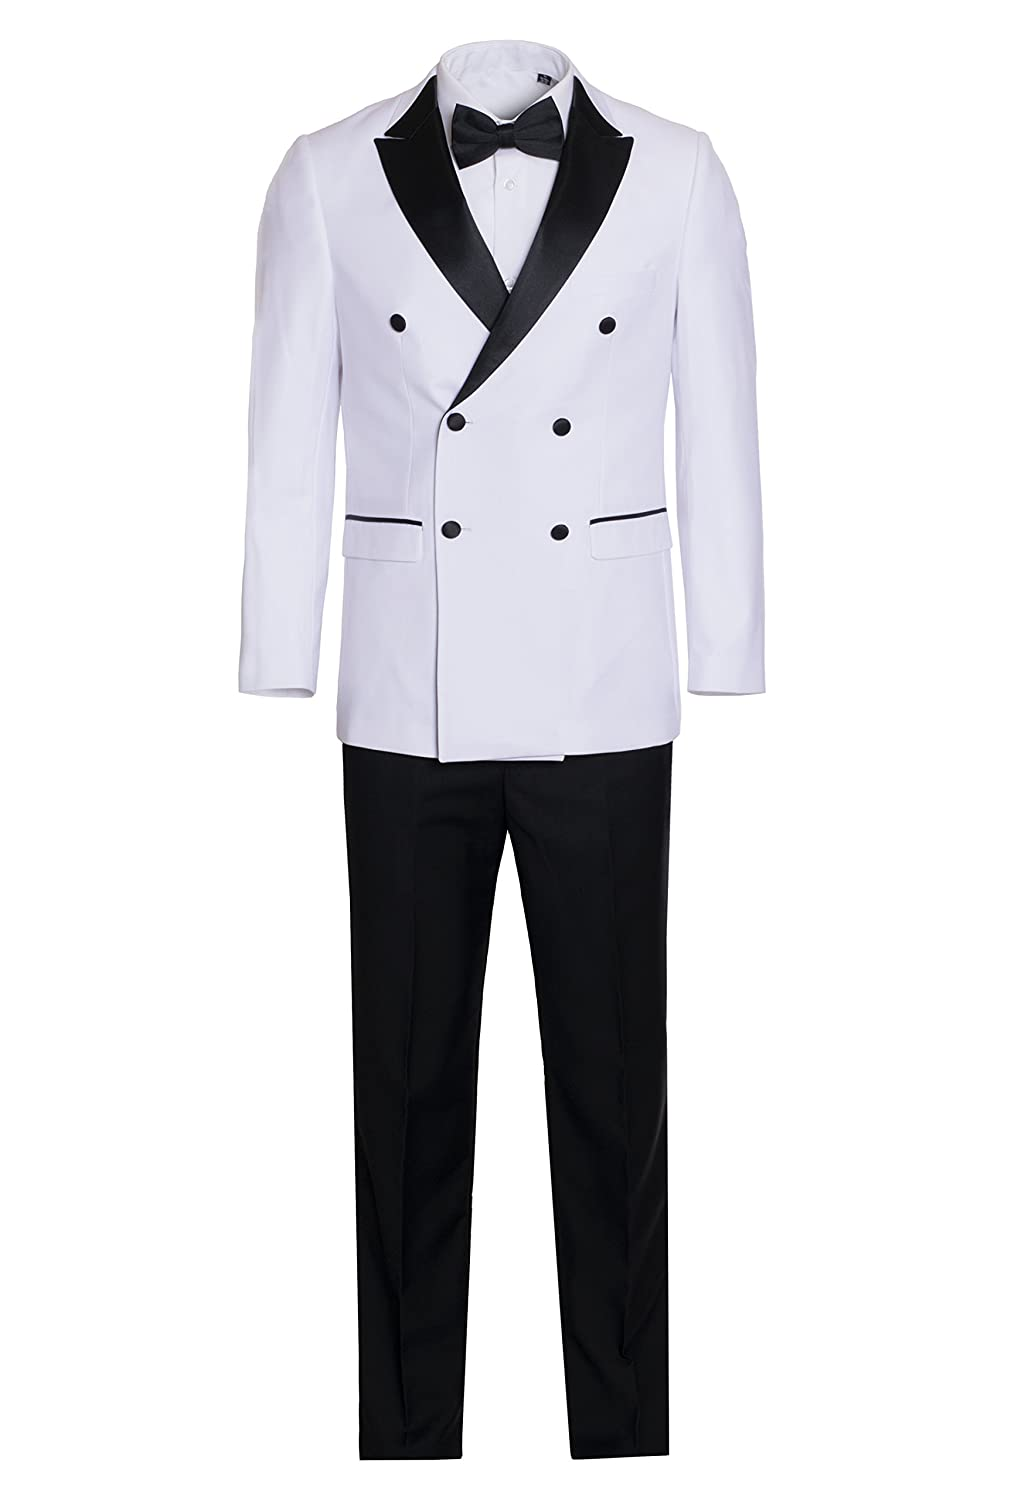 King Formal Wear Men's Premium Double Breasted Slim Fit Tuxedo-Many Colors